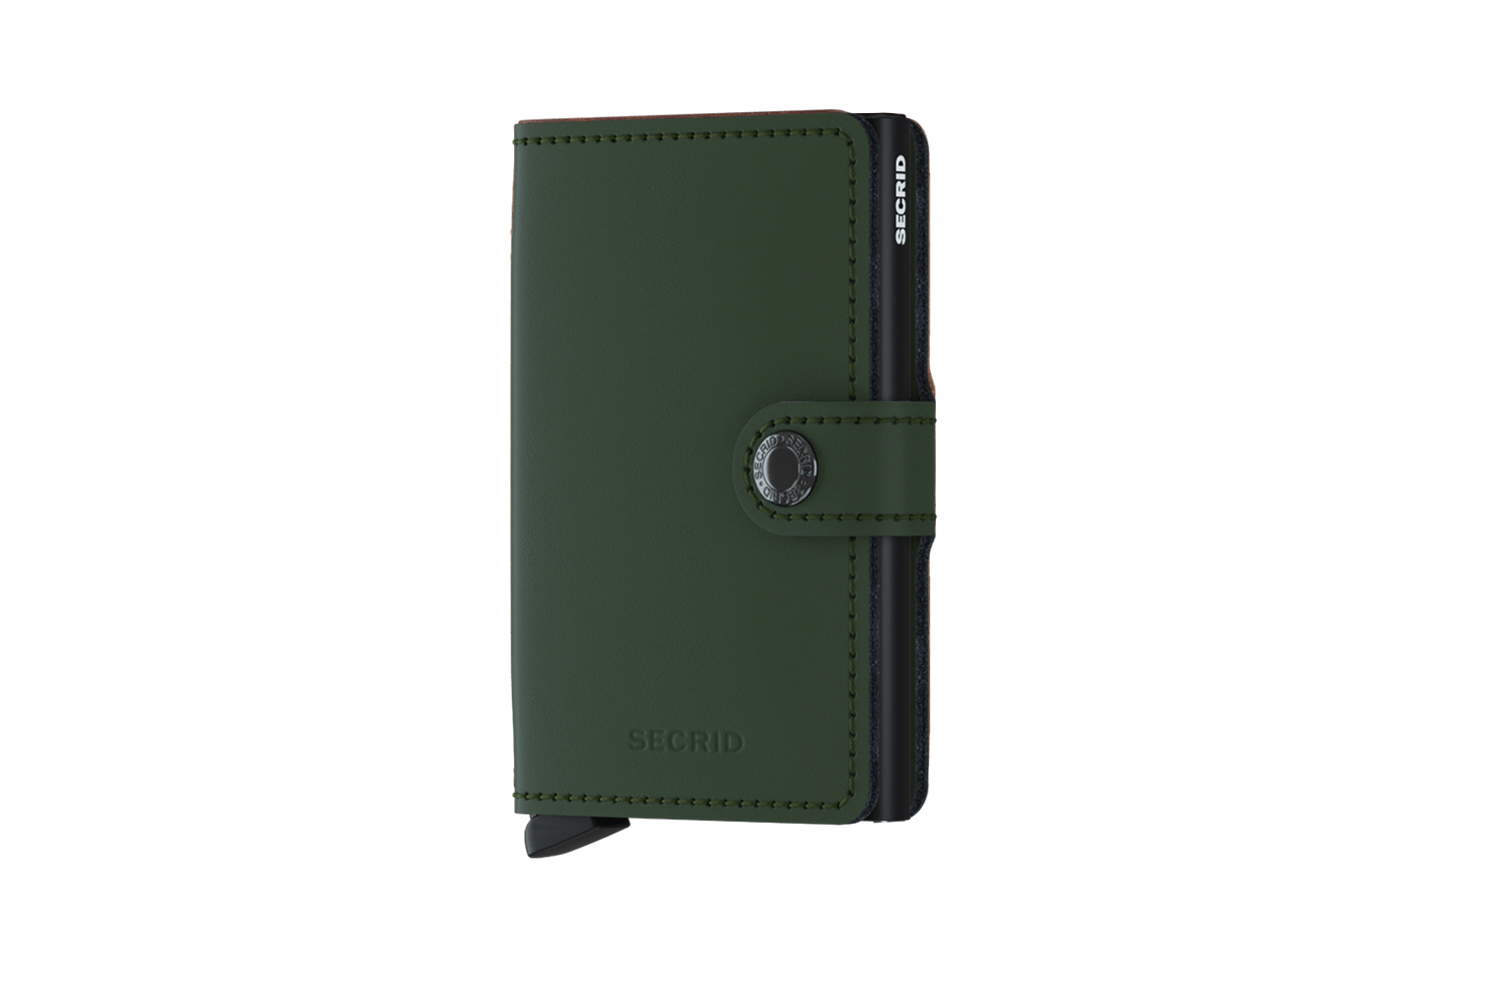 Secrid Miniwallet Matt Green 2